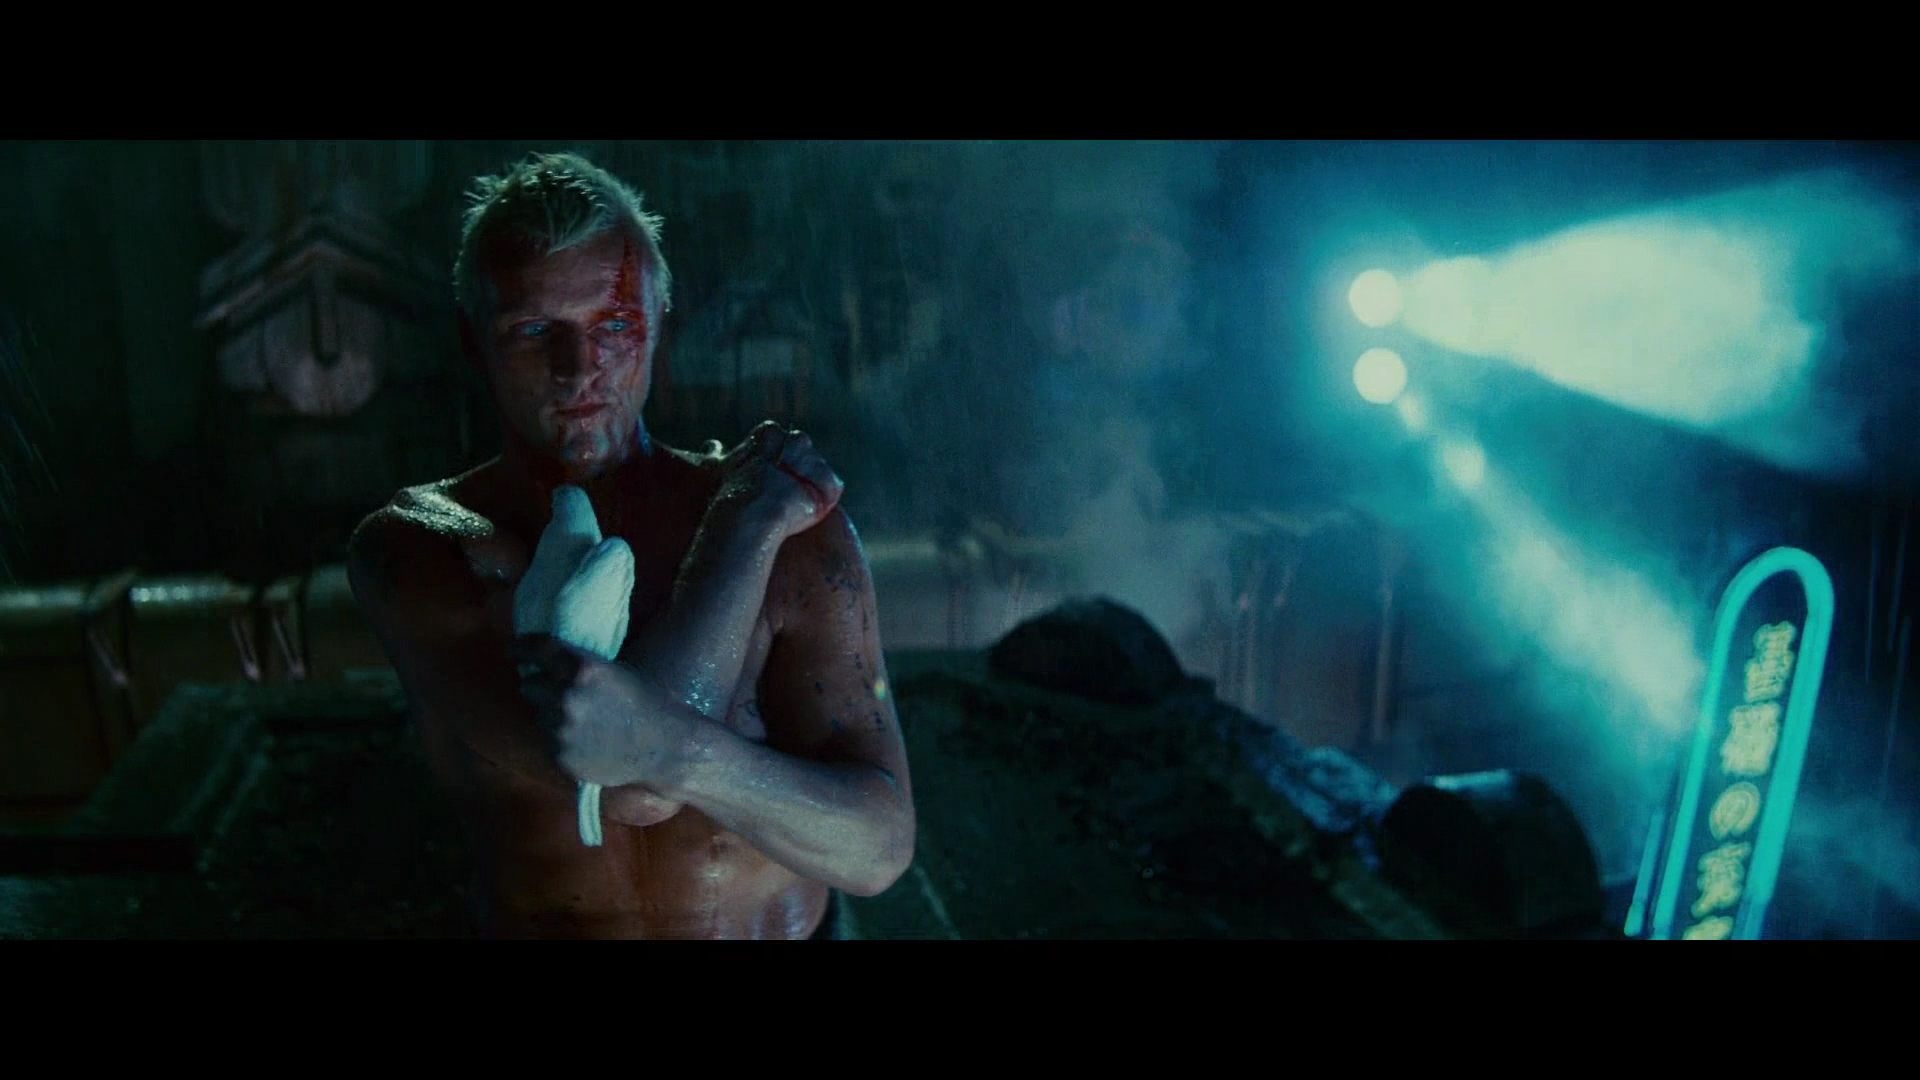 File Name 981281 Blade Runner HD Wallpapers Backgrounds 1920x1080